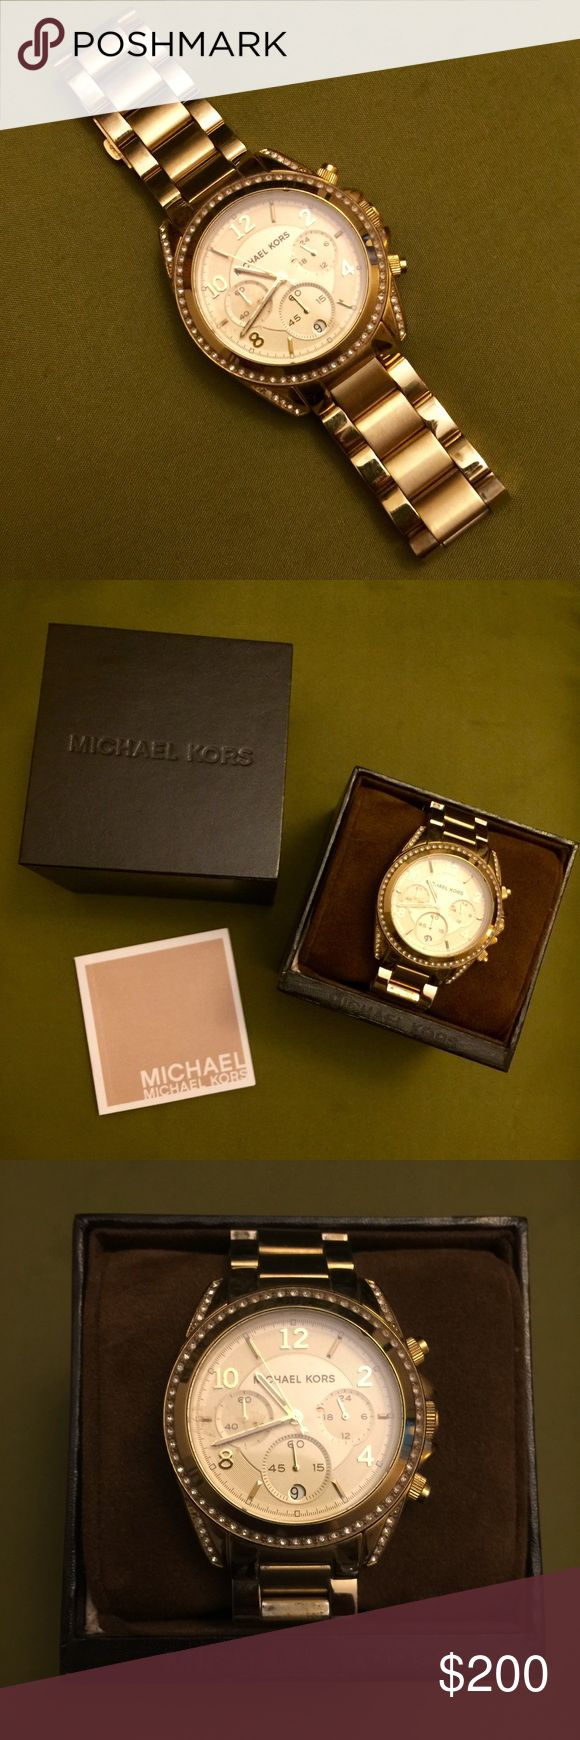 """Michael Kors 'Blair' Gold-Tone Chronograph Watch Michael Kors MK5166 Blair Gold-Tone Stainless Steel Chronograph Watch (about a little over 6.5"""" in circumference) Michael Kors Jewelry"""